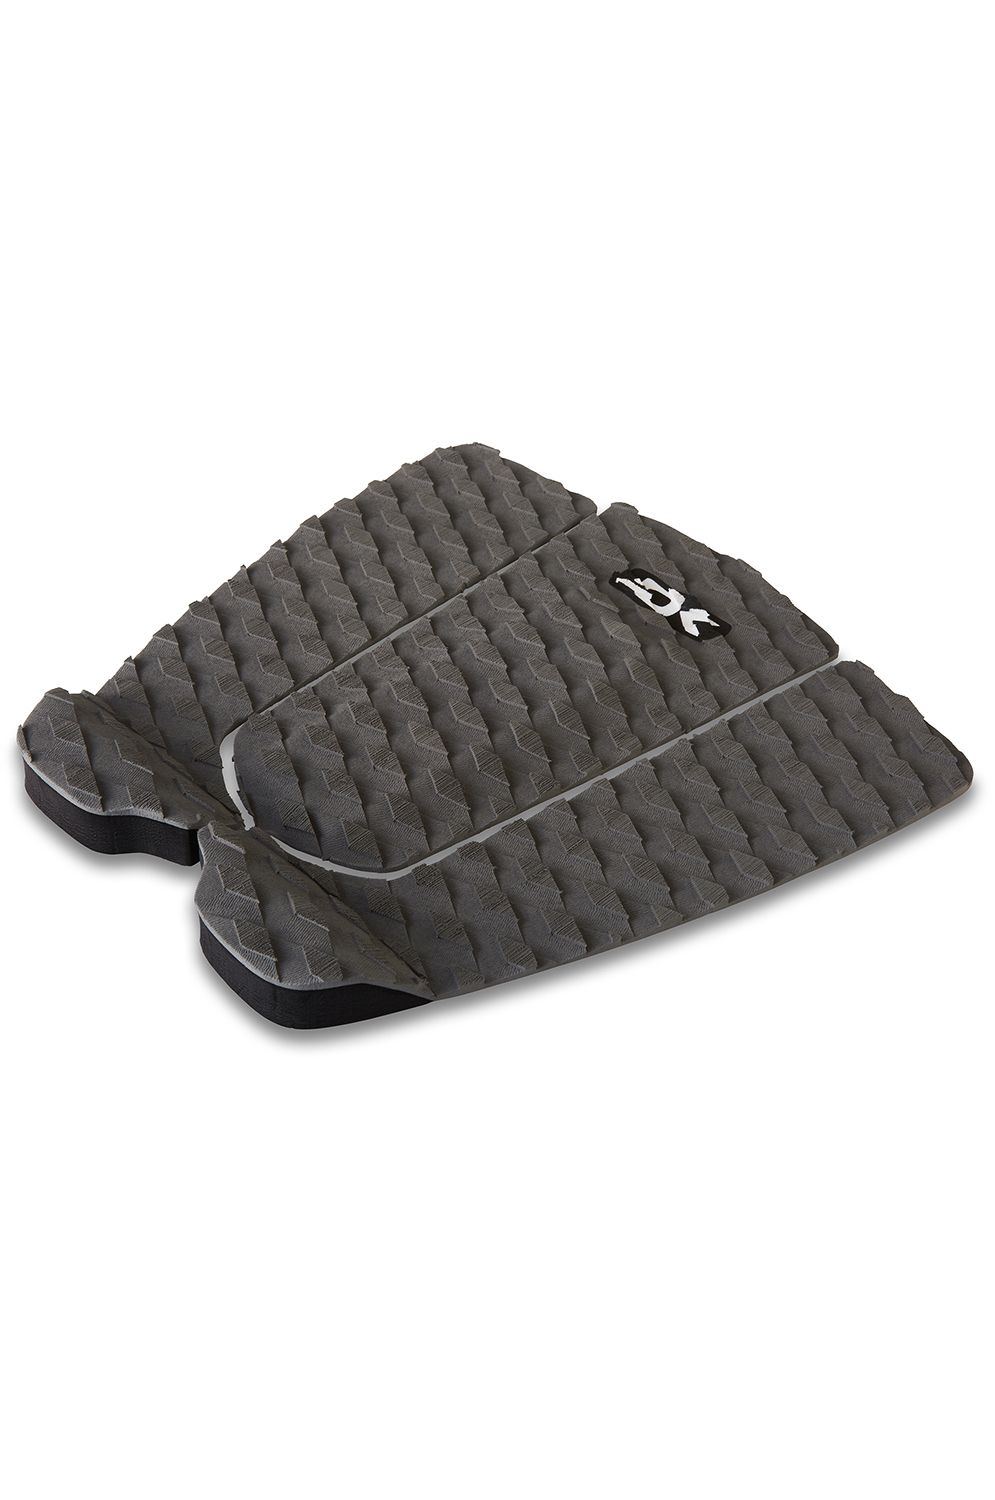 Dakine Deck ANDY IRONS PRO SURF TRACTION PAD Shadow